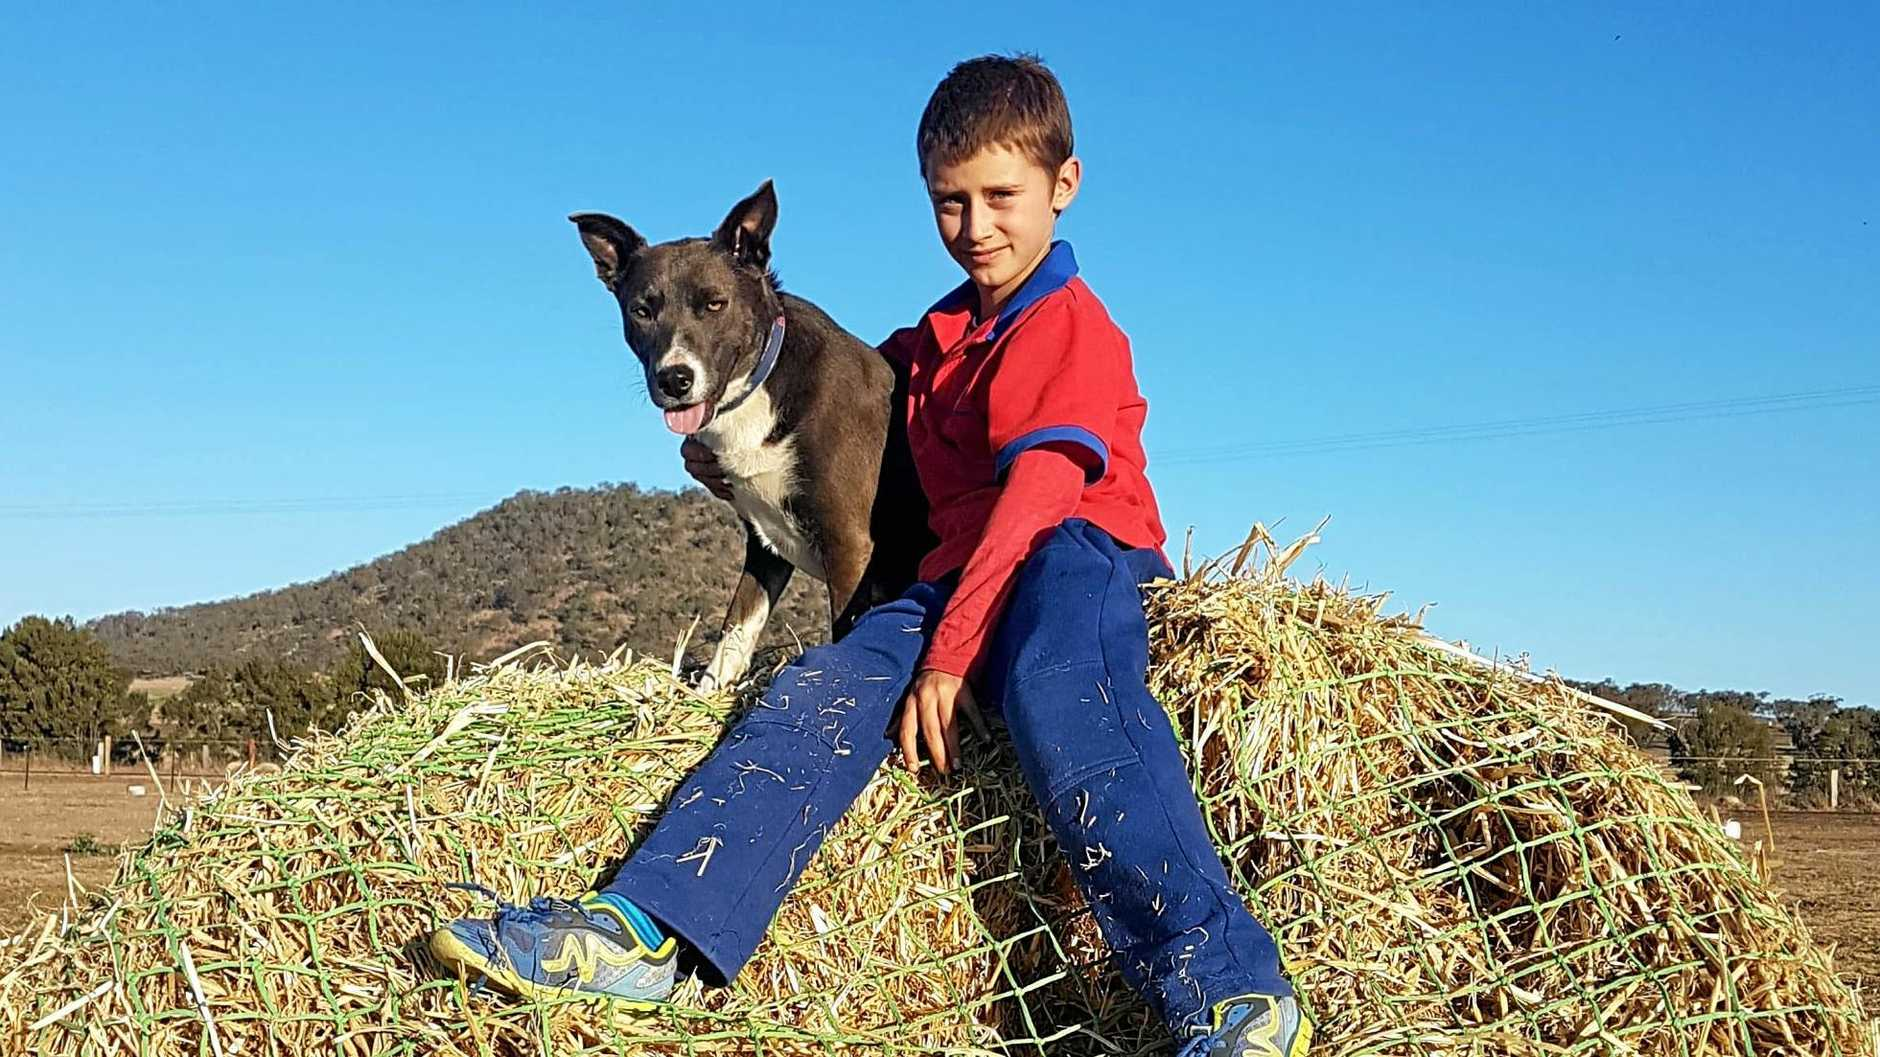 BEST MATES: When Jack and Blue laid eyes on each other, they knew they were going to be best mates. The   boy from Goomburra and  dog  keep one another company through thick and thin.